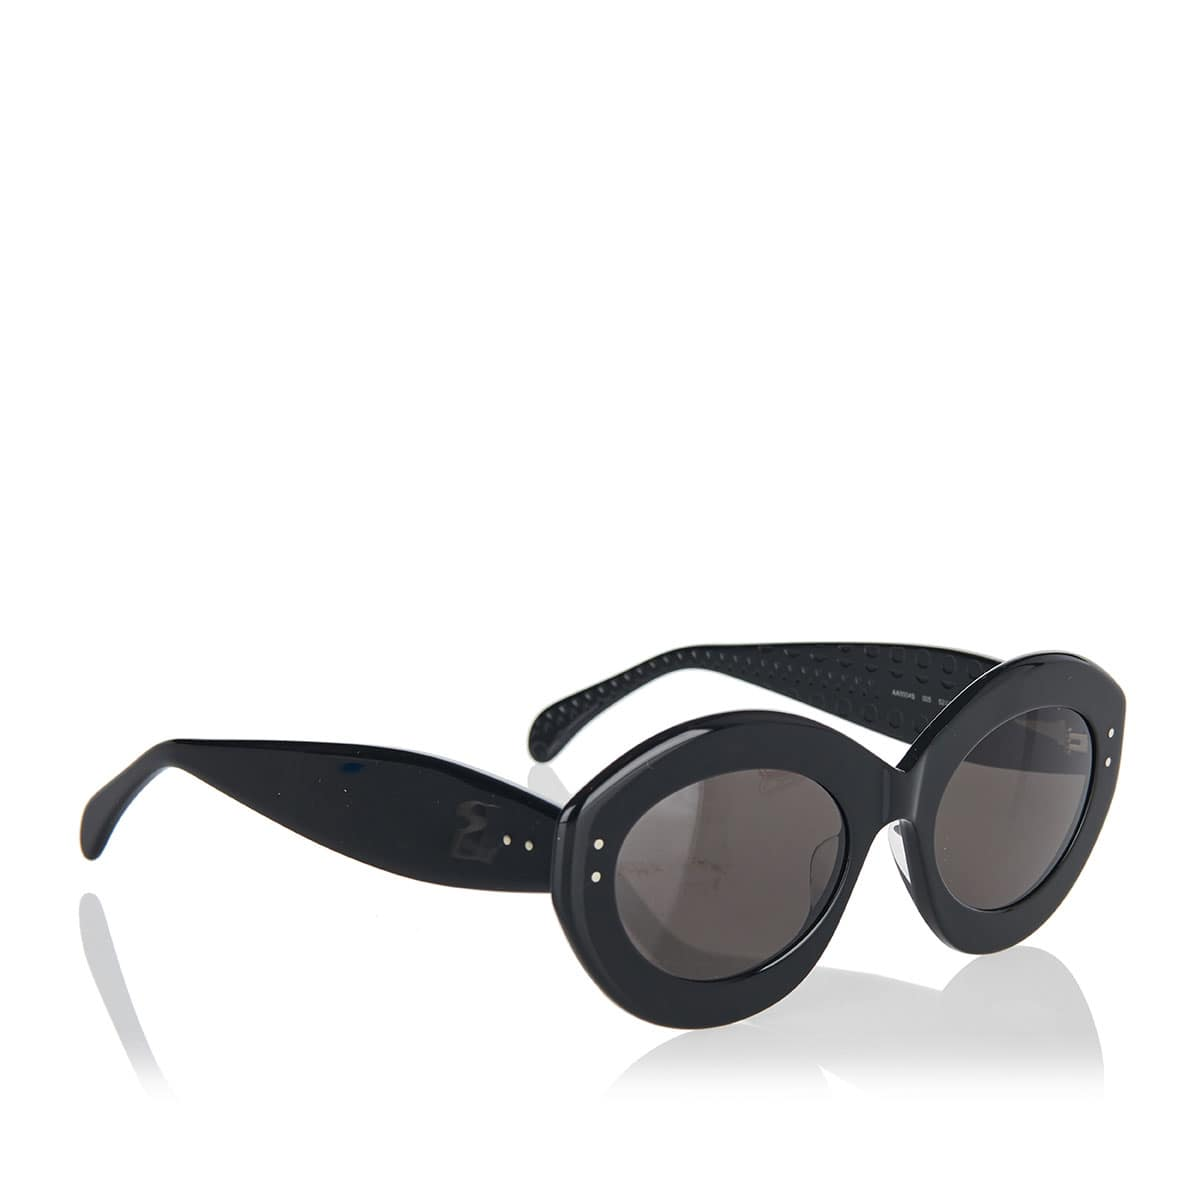 Oversized oval sunglasses